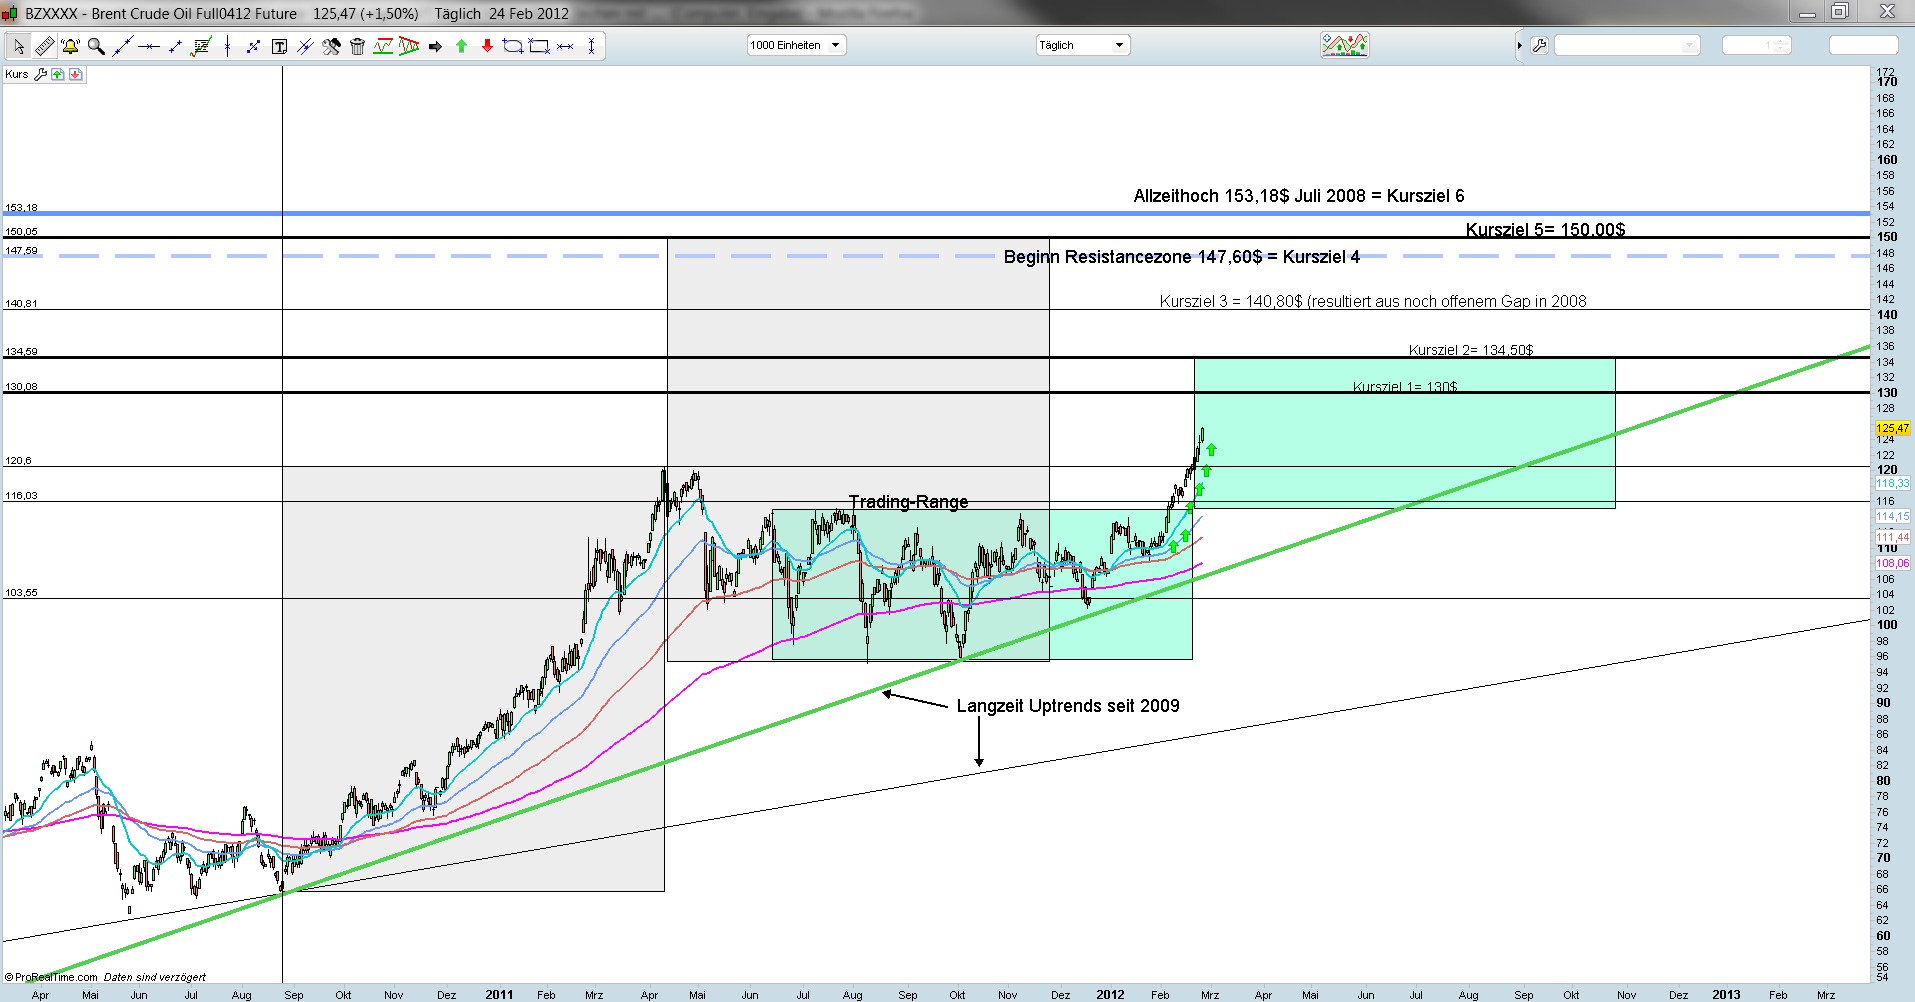 Brent Crude Future Tageschart 24.02.2012